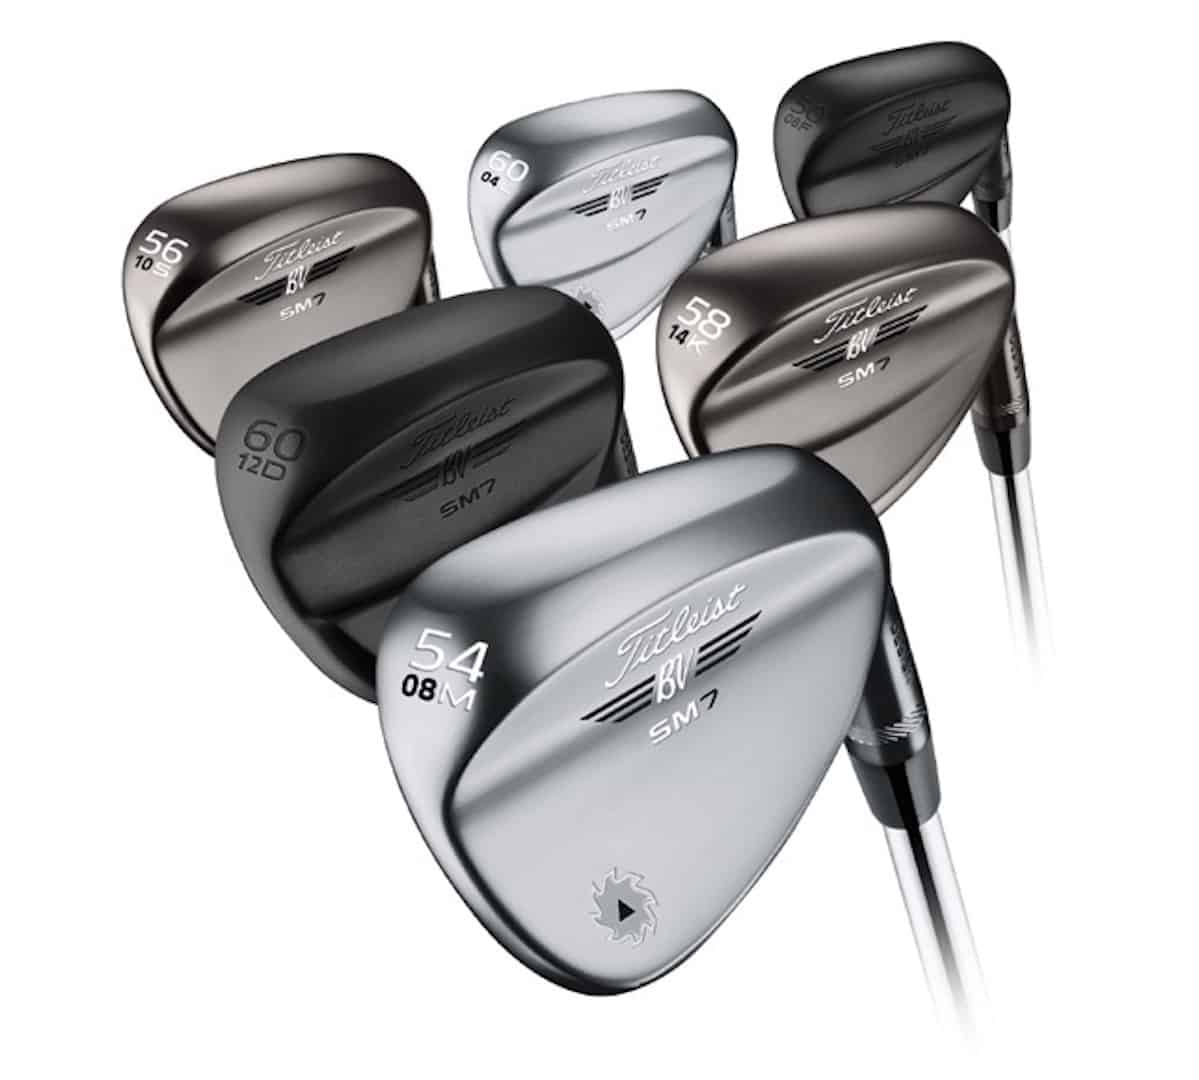 6 Titleist Vokey SM7 Wedges in 3 different finishes. Chrome, Brushed Steel, Raw, Slate Blue, and Brushed Steel Options.